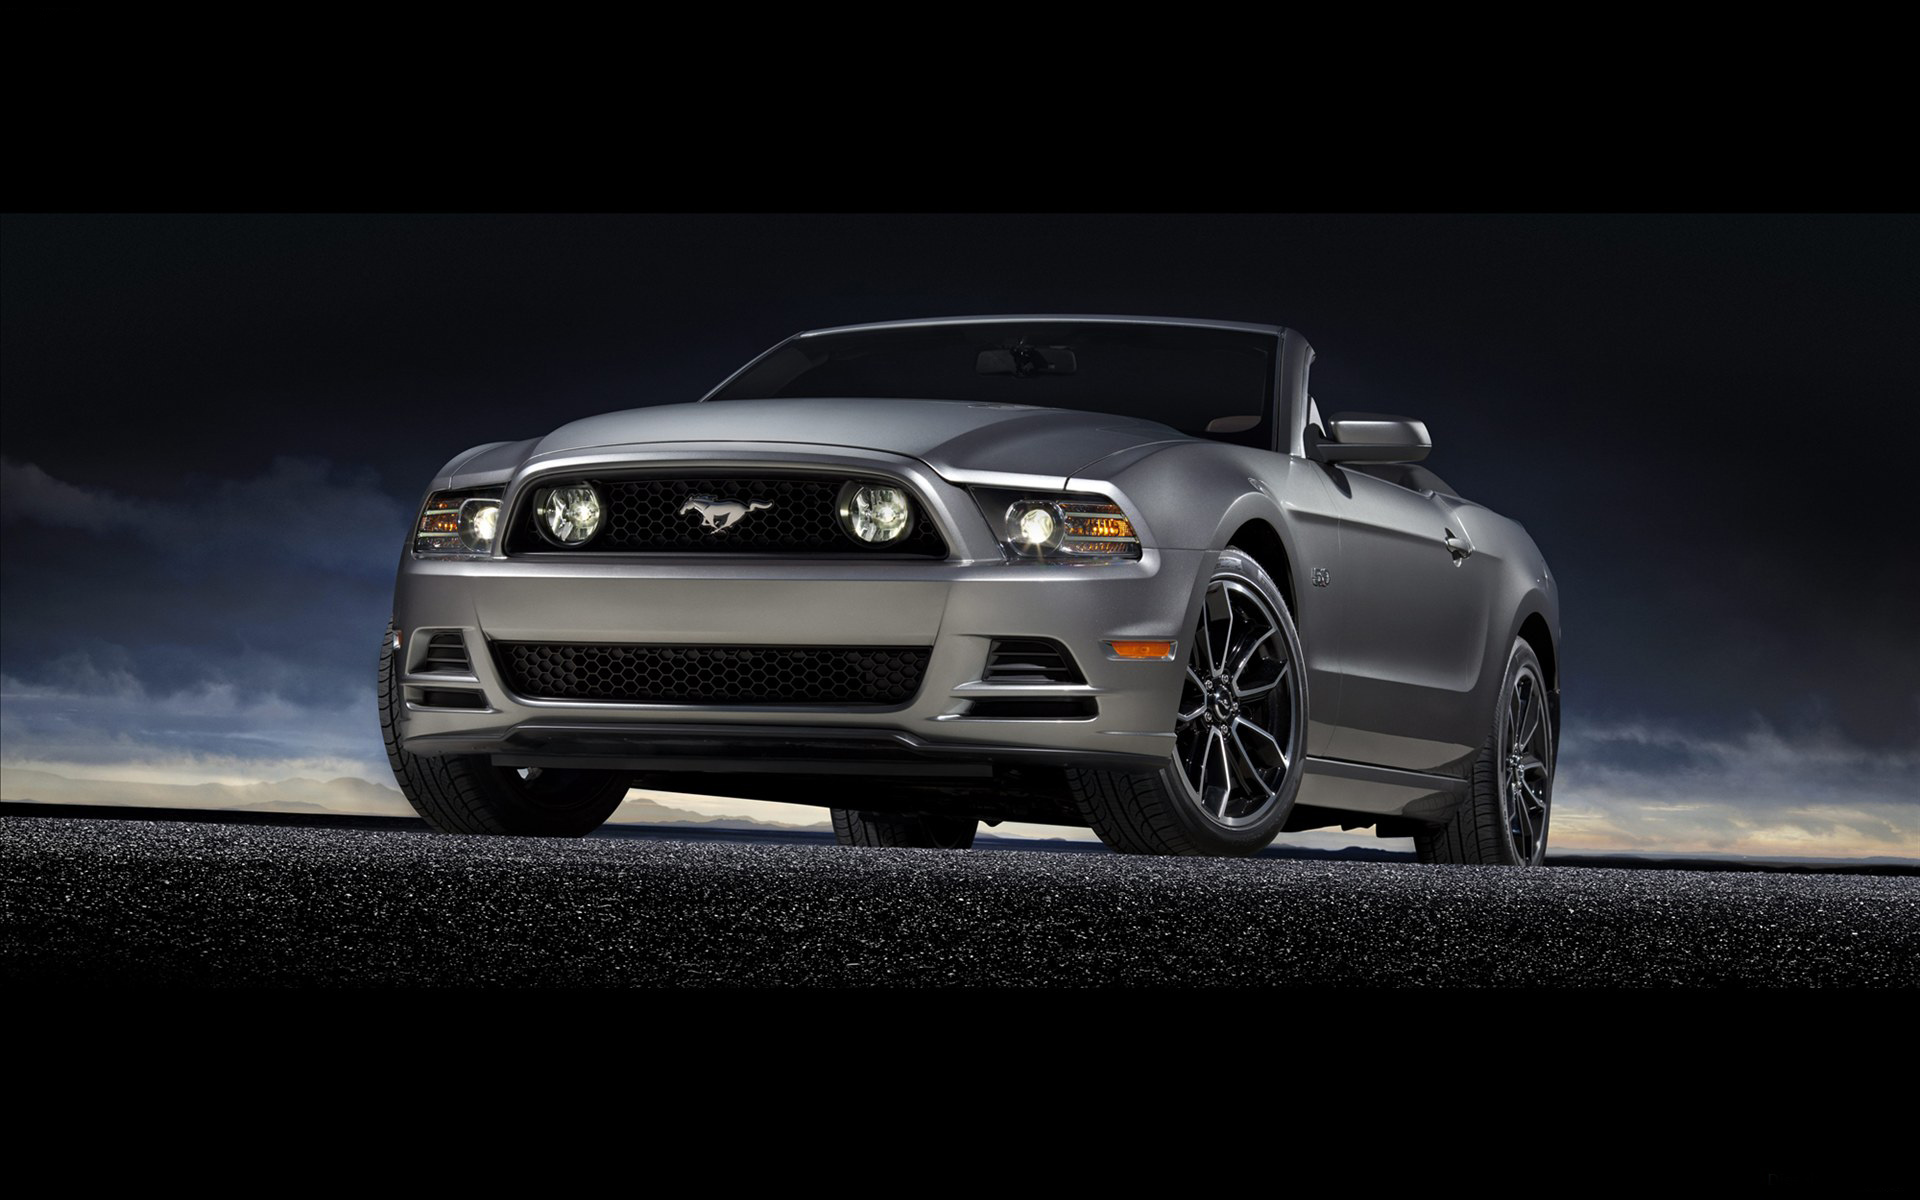 Ford Mustang Gt 2013 Wallpaper Hd Car Wallpapers Id 2530